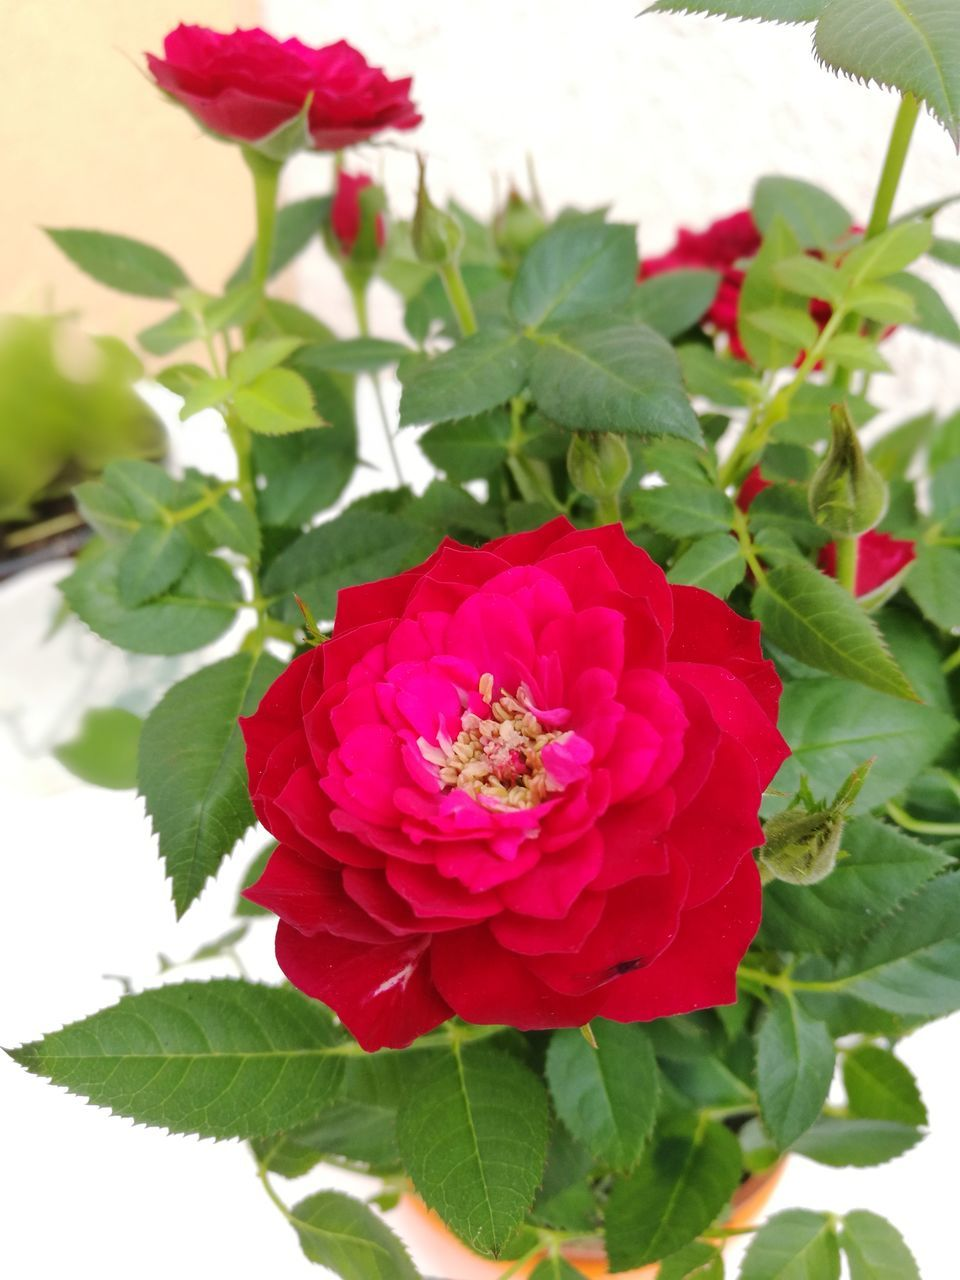 flower, petal, leaf, beauty in nature, nature, fragility, red, growth, freshness, plant, rose - flower, no people, flower head, pink color, blooming, green color, day, outdoors, close-up, zinnia